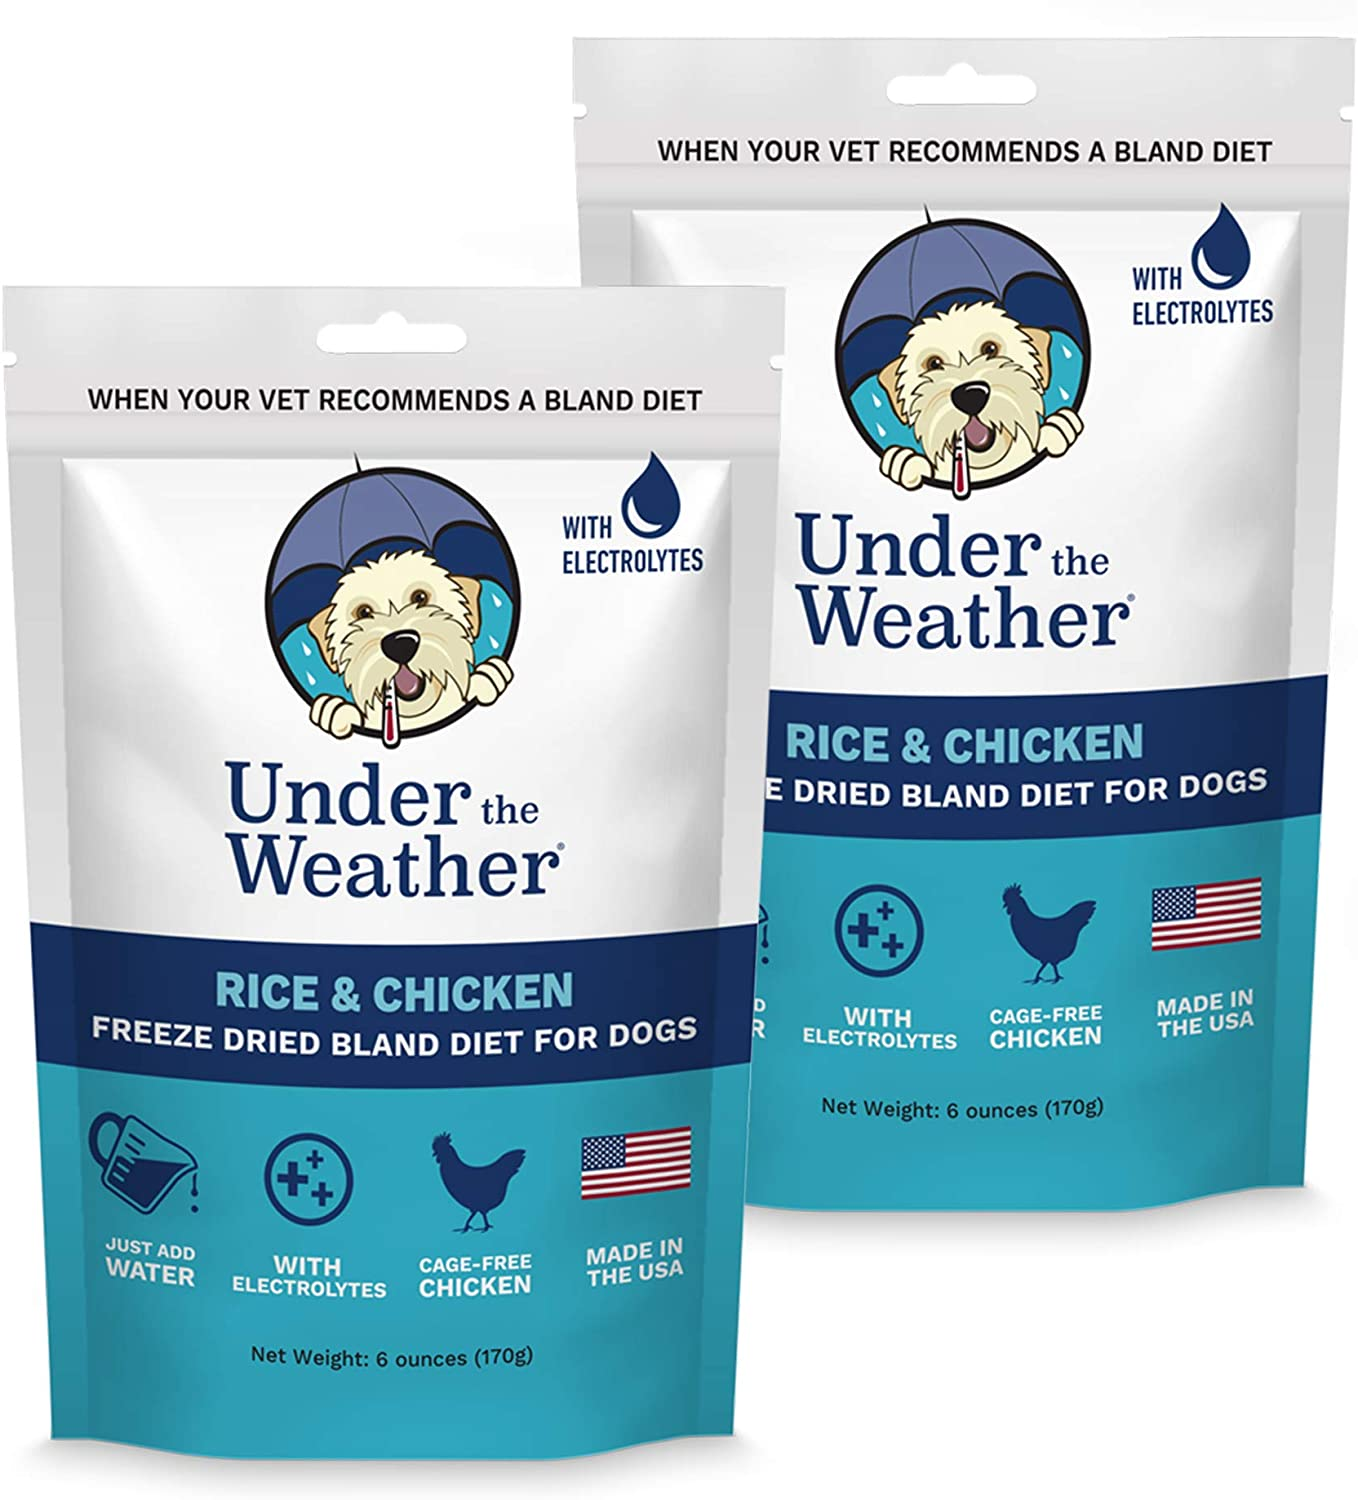 Under the Weather Pets   Easy to Digest Bland Dog Food Diet, Sick Dogs Sensitive Stomachs - Electrolytes - Gluten Free, All Natural, Freeze Dried 100% Human Grade Meat (Rice, Chicken - 2 Pack)